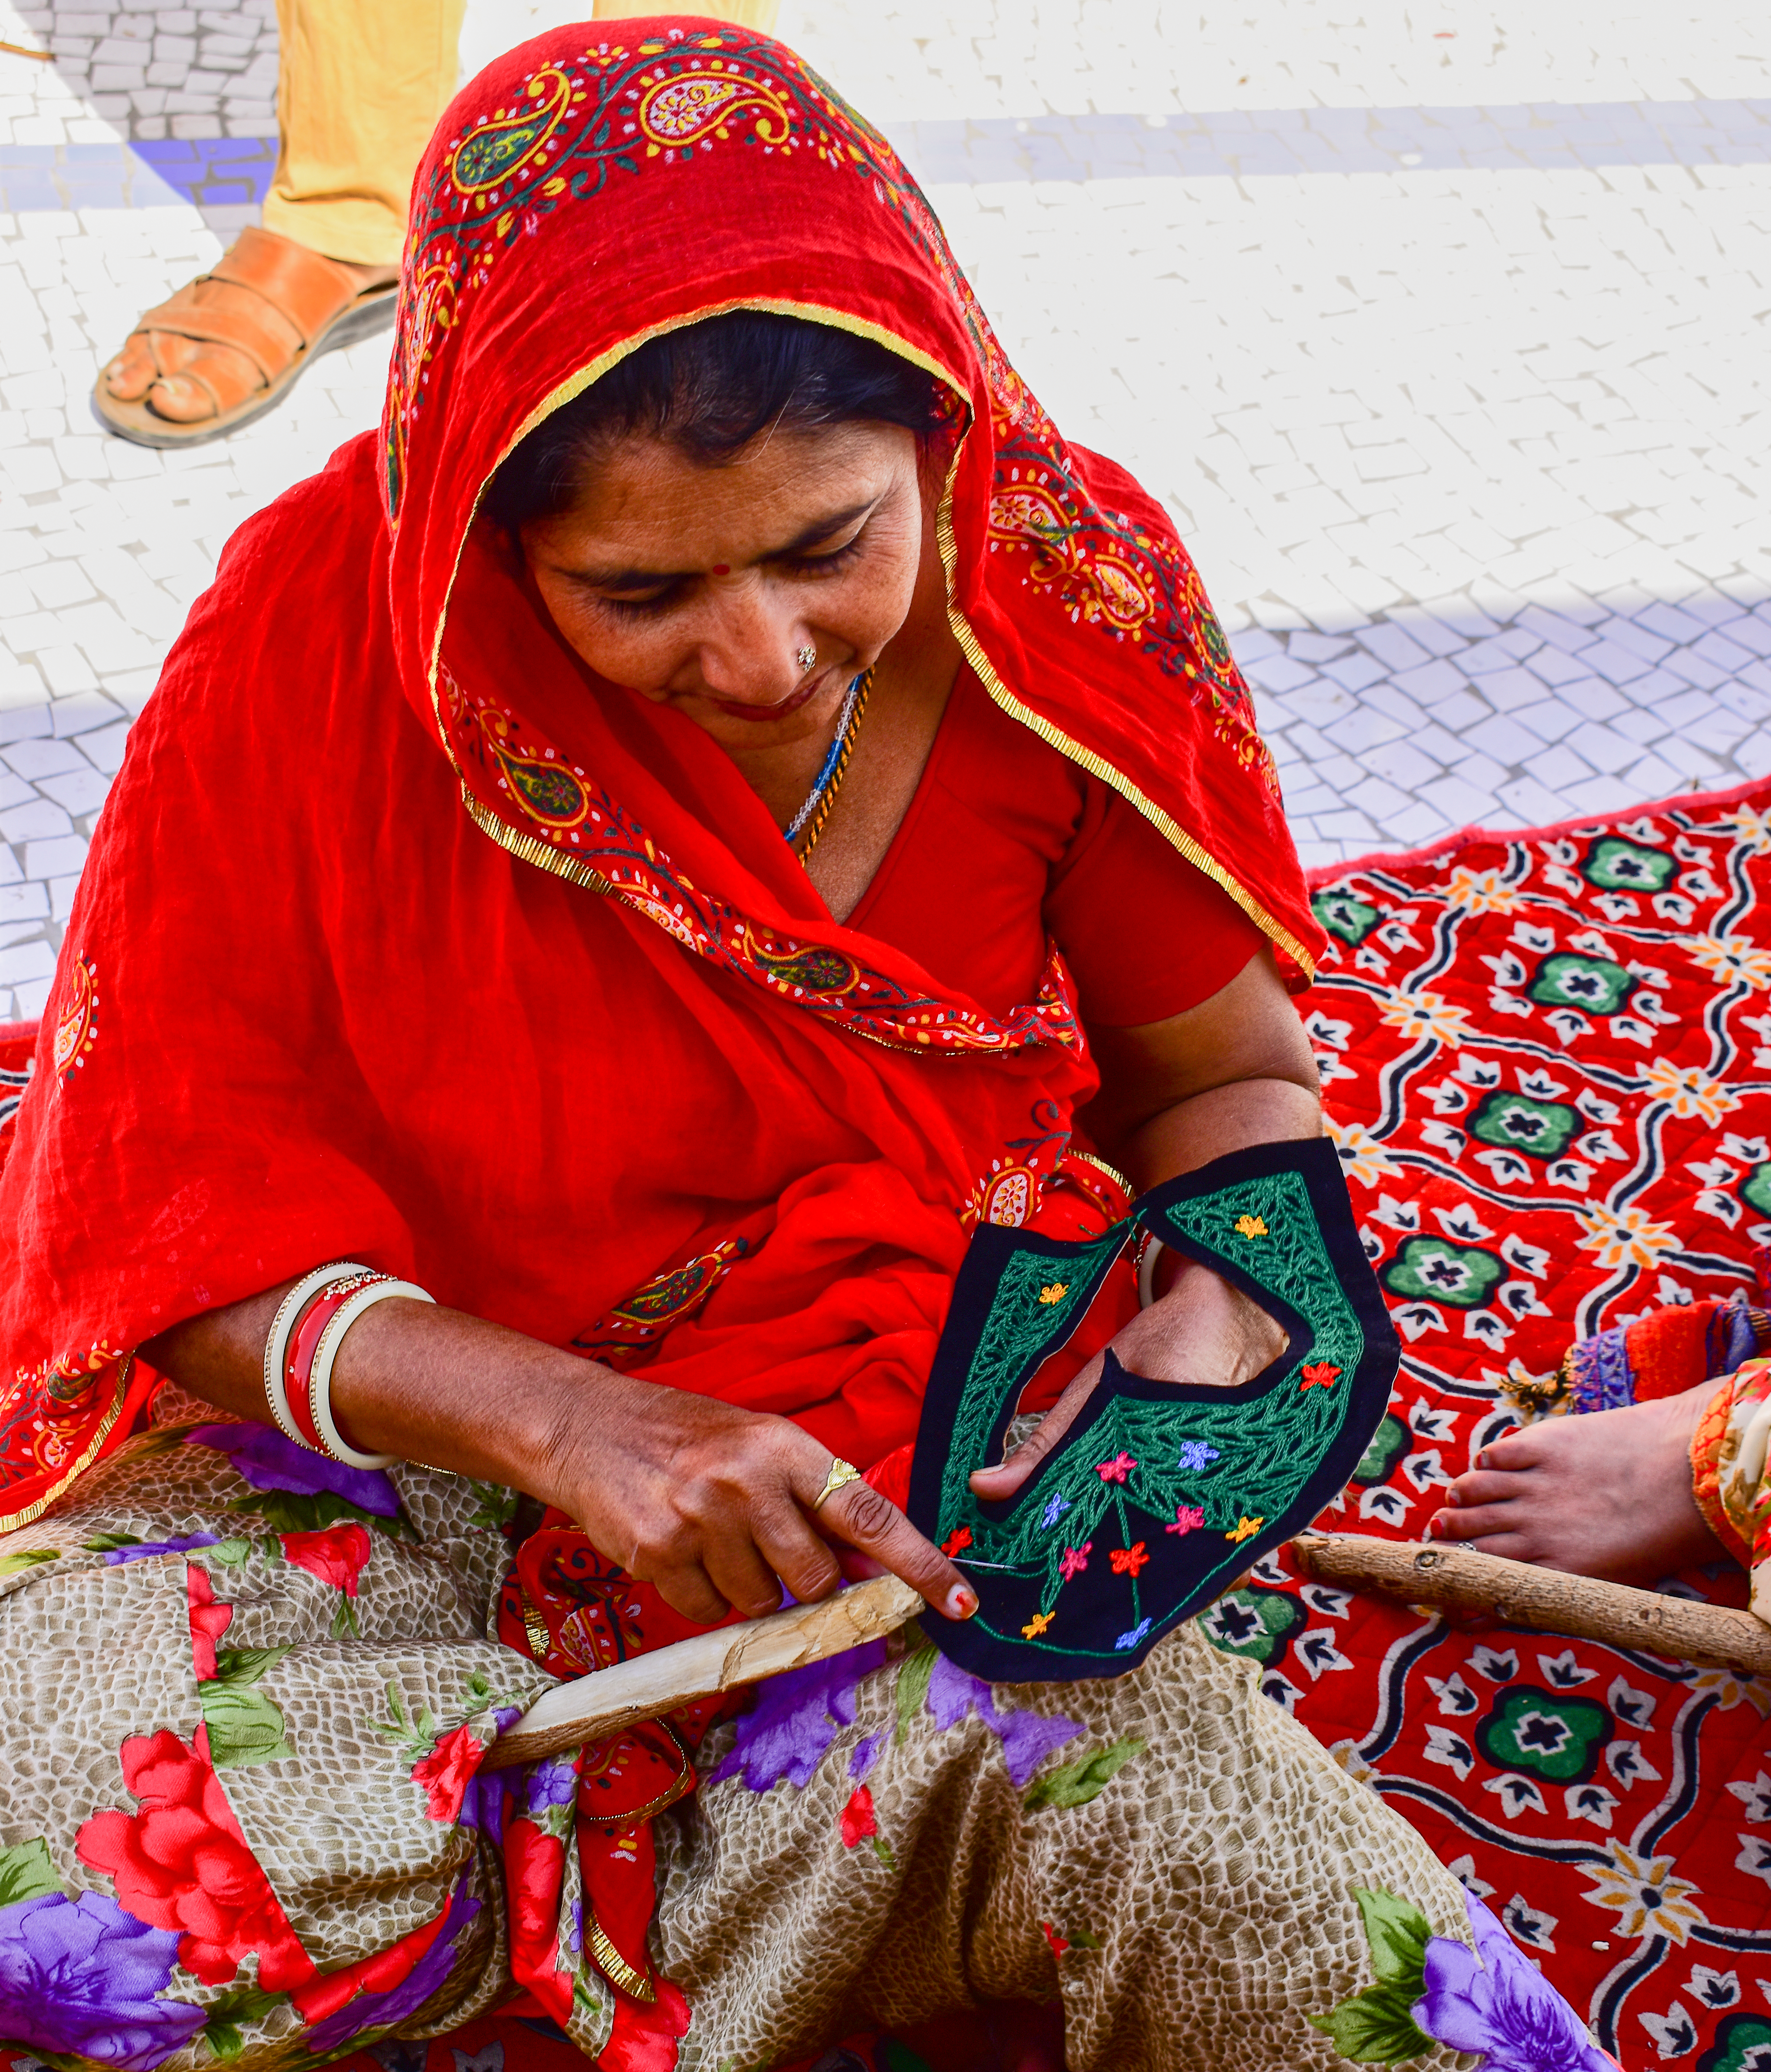 Female Indian Artisan Embroidery